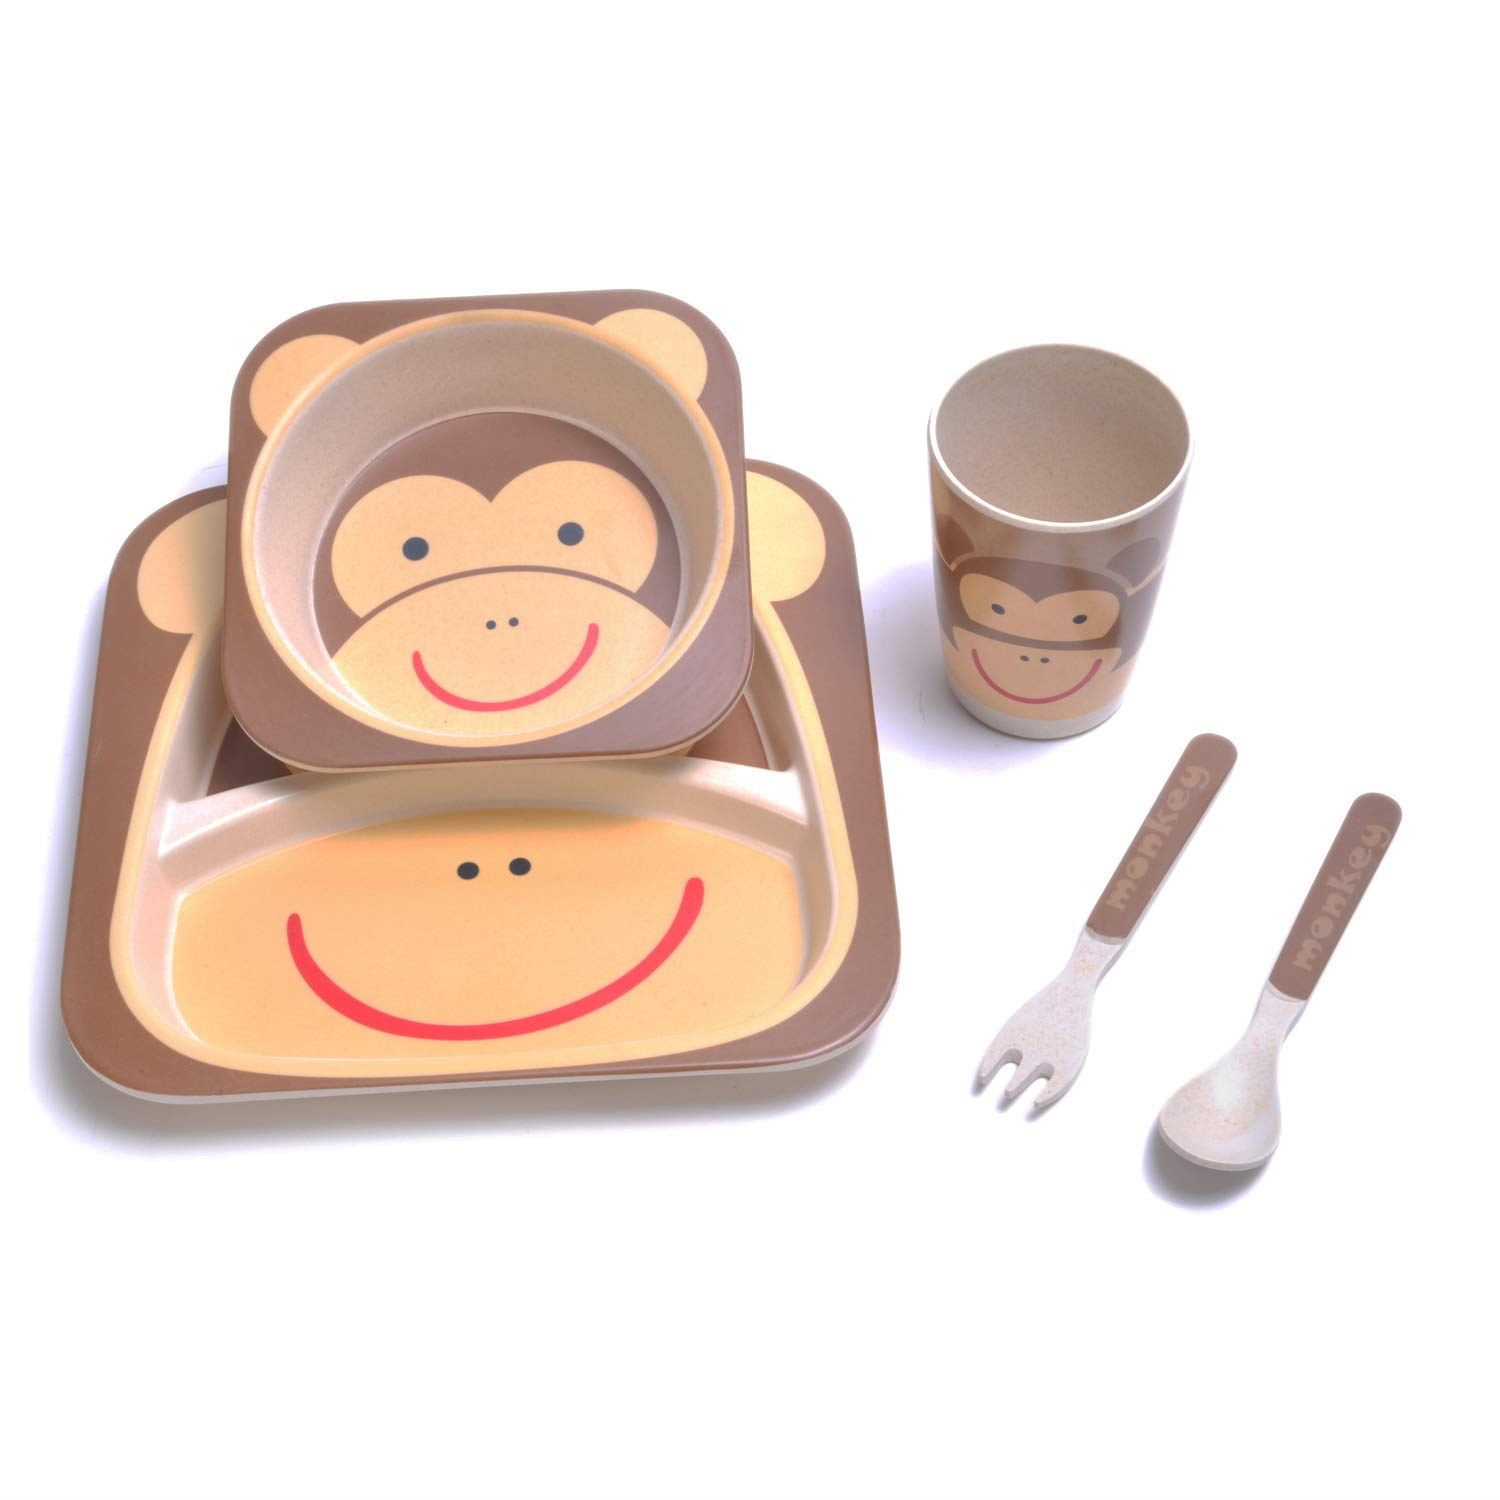 Bamboo-Kids-Meal-Set-Eco-Friendly-securite-alimentaire-alimentation-5pcs-Cuillere-Plate-Set-Toddler miniature 14